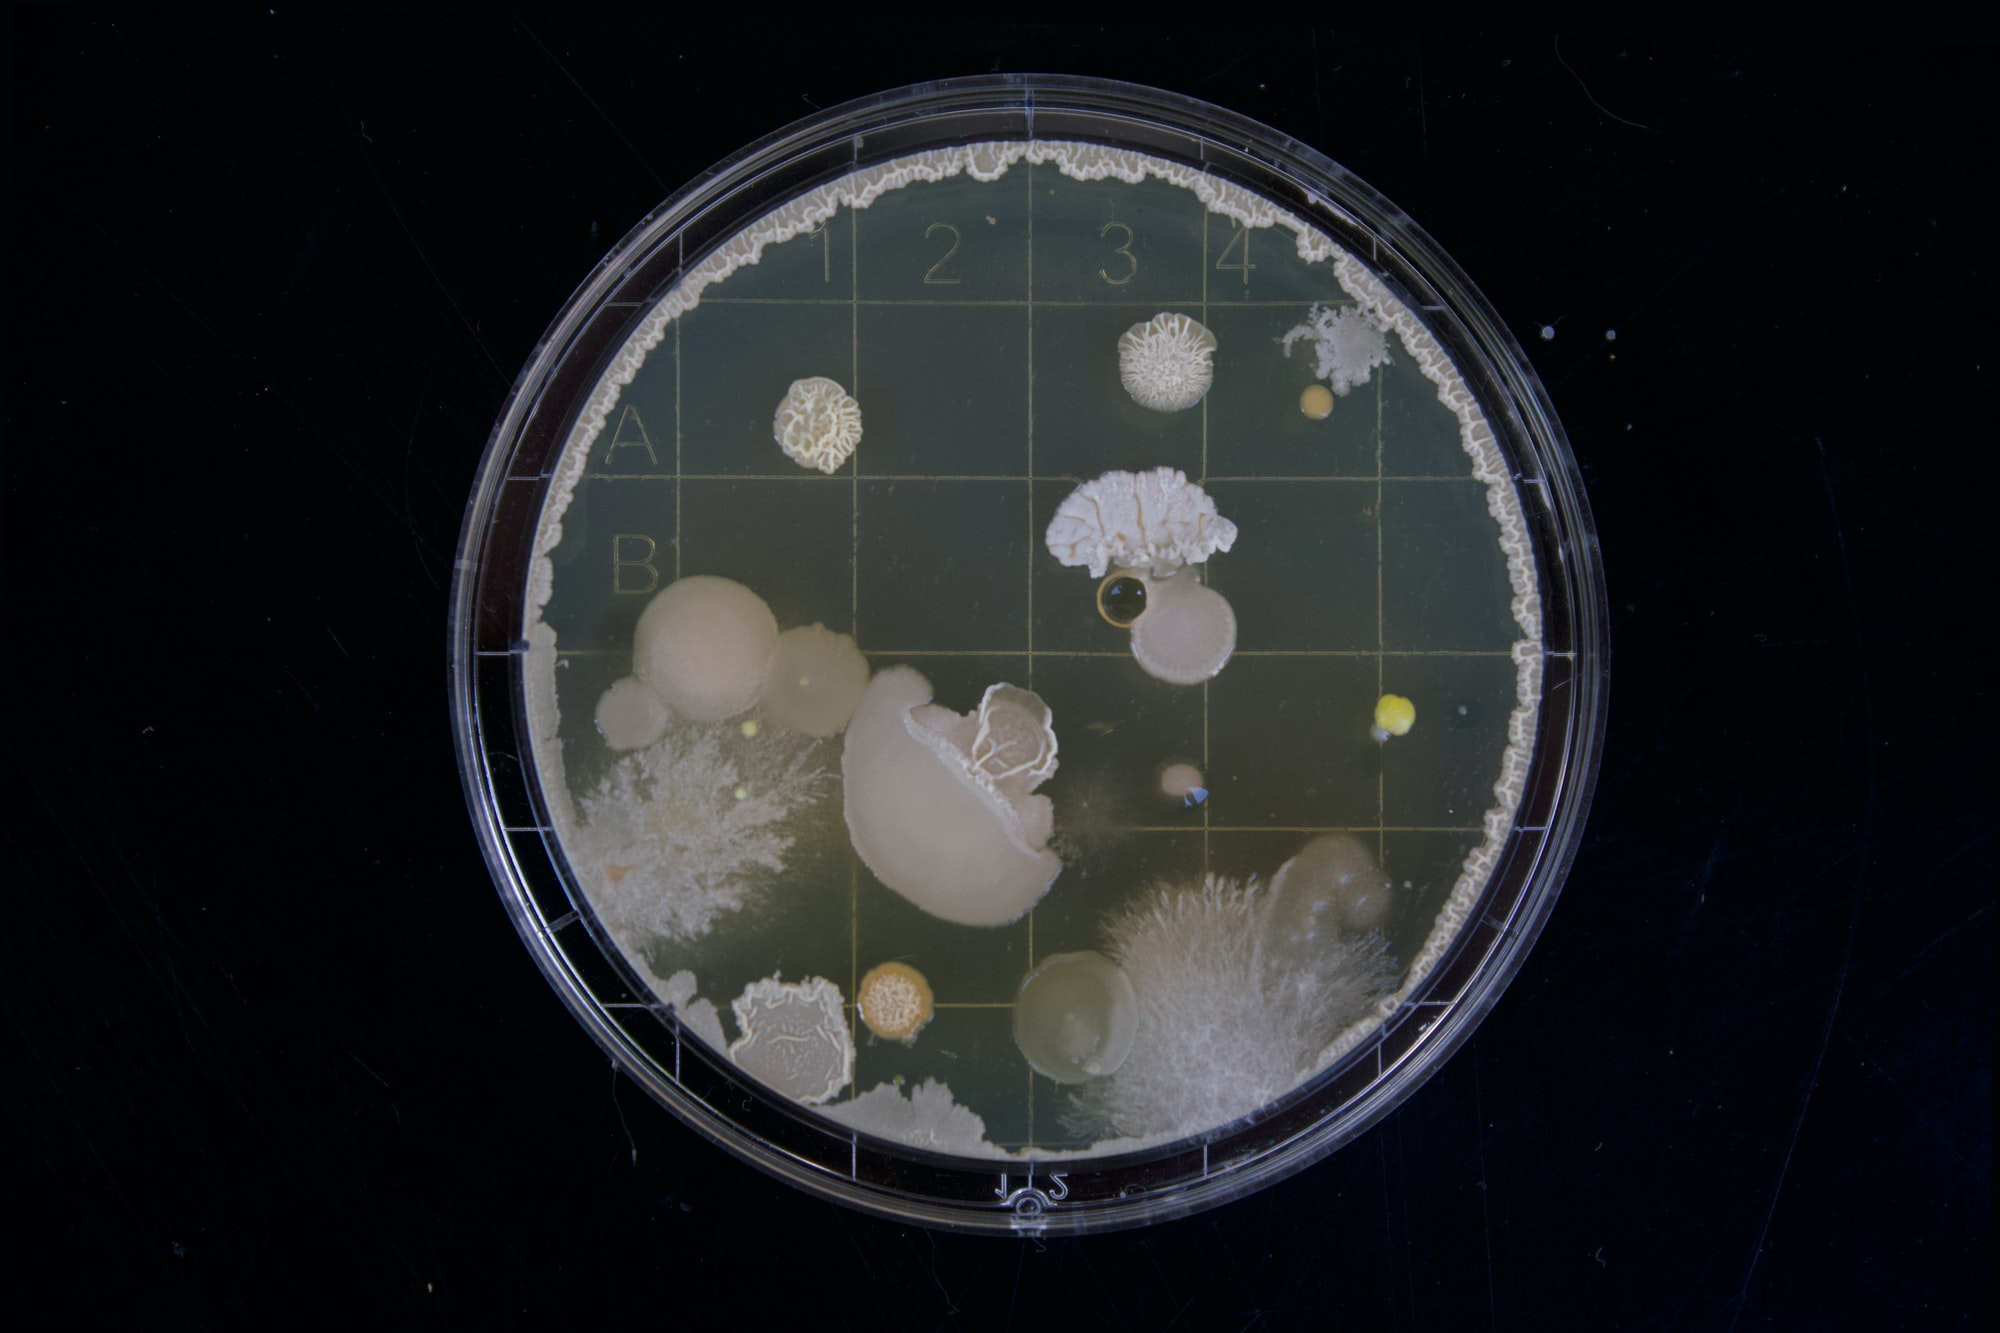 MIT geniuses use machine learning to find superbug-resistant antibiotic